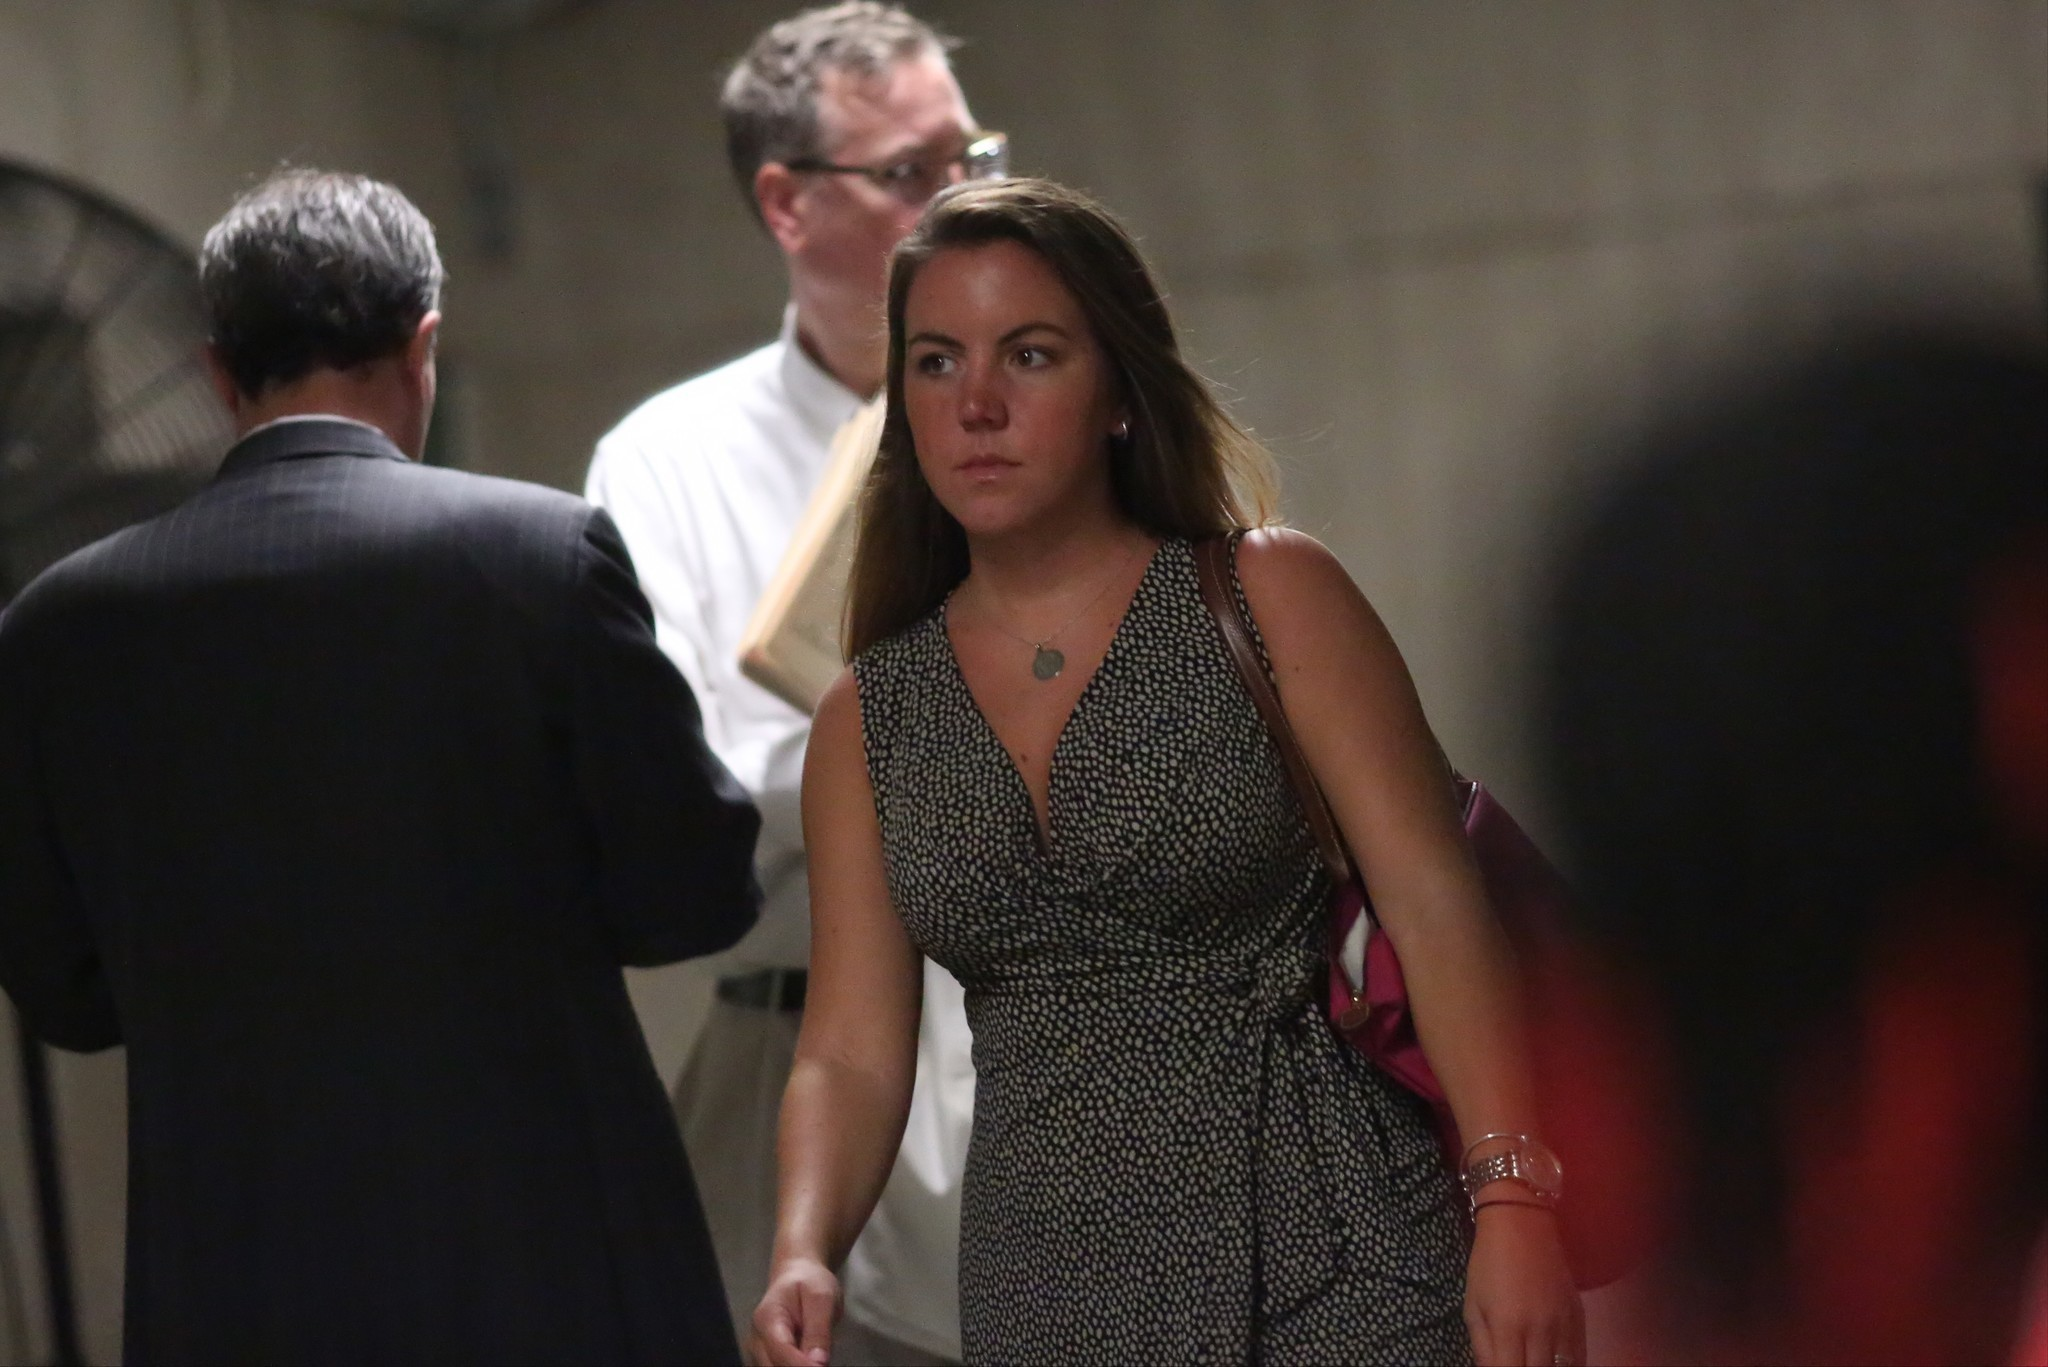 Bronx teacher who performed oral sex on 14-year-old gets 10 years  probation, avoids jail, ...